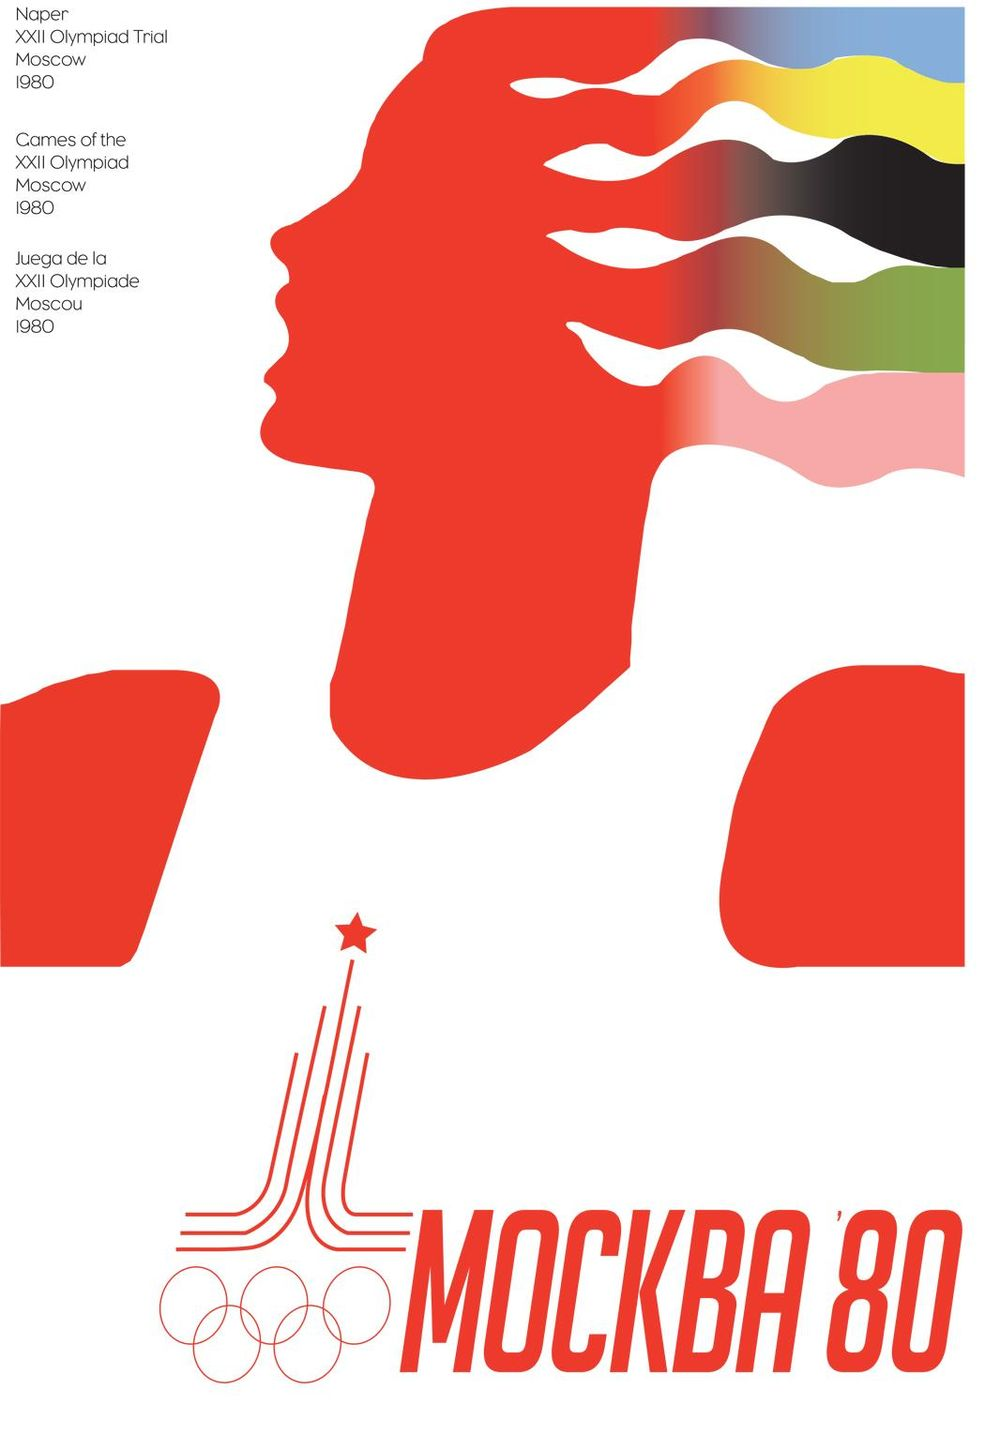 1980 Olympics poster from Moscow - image 1 - student project